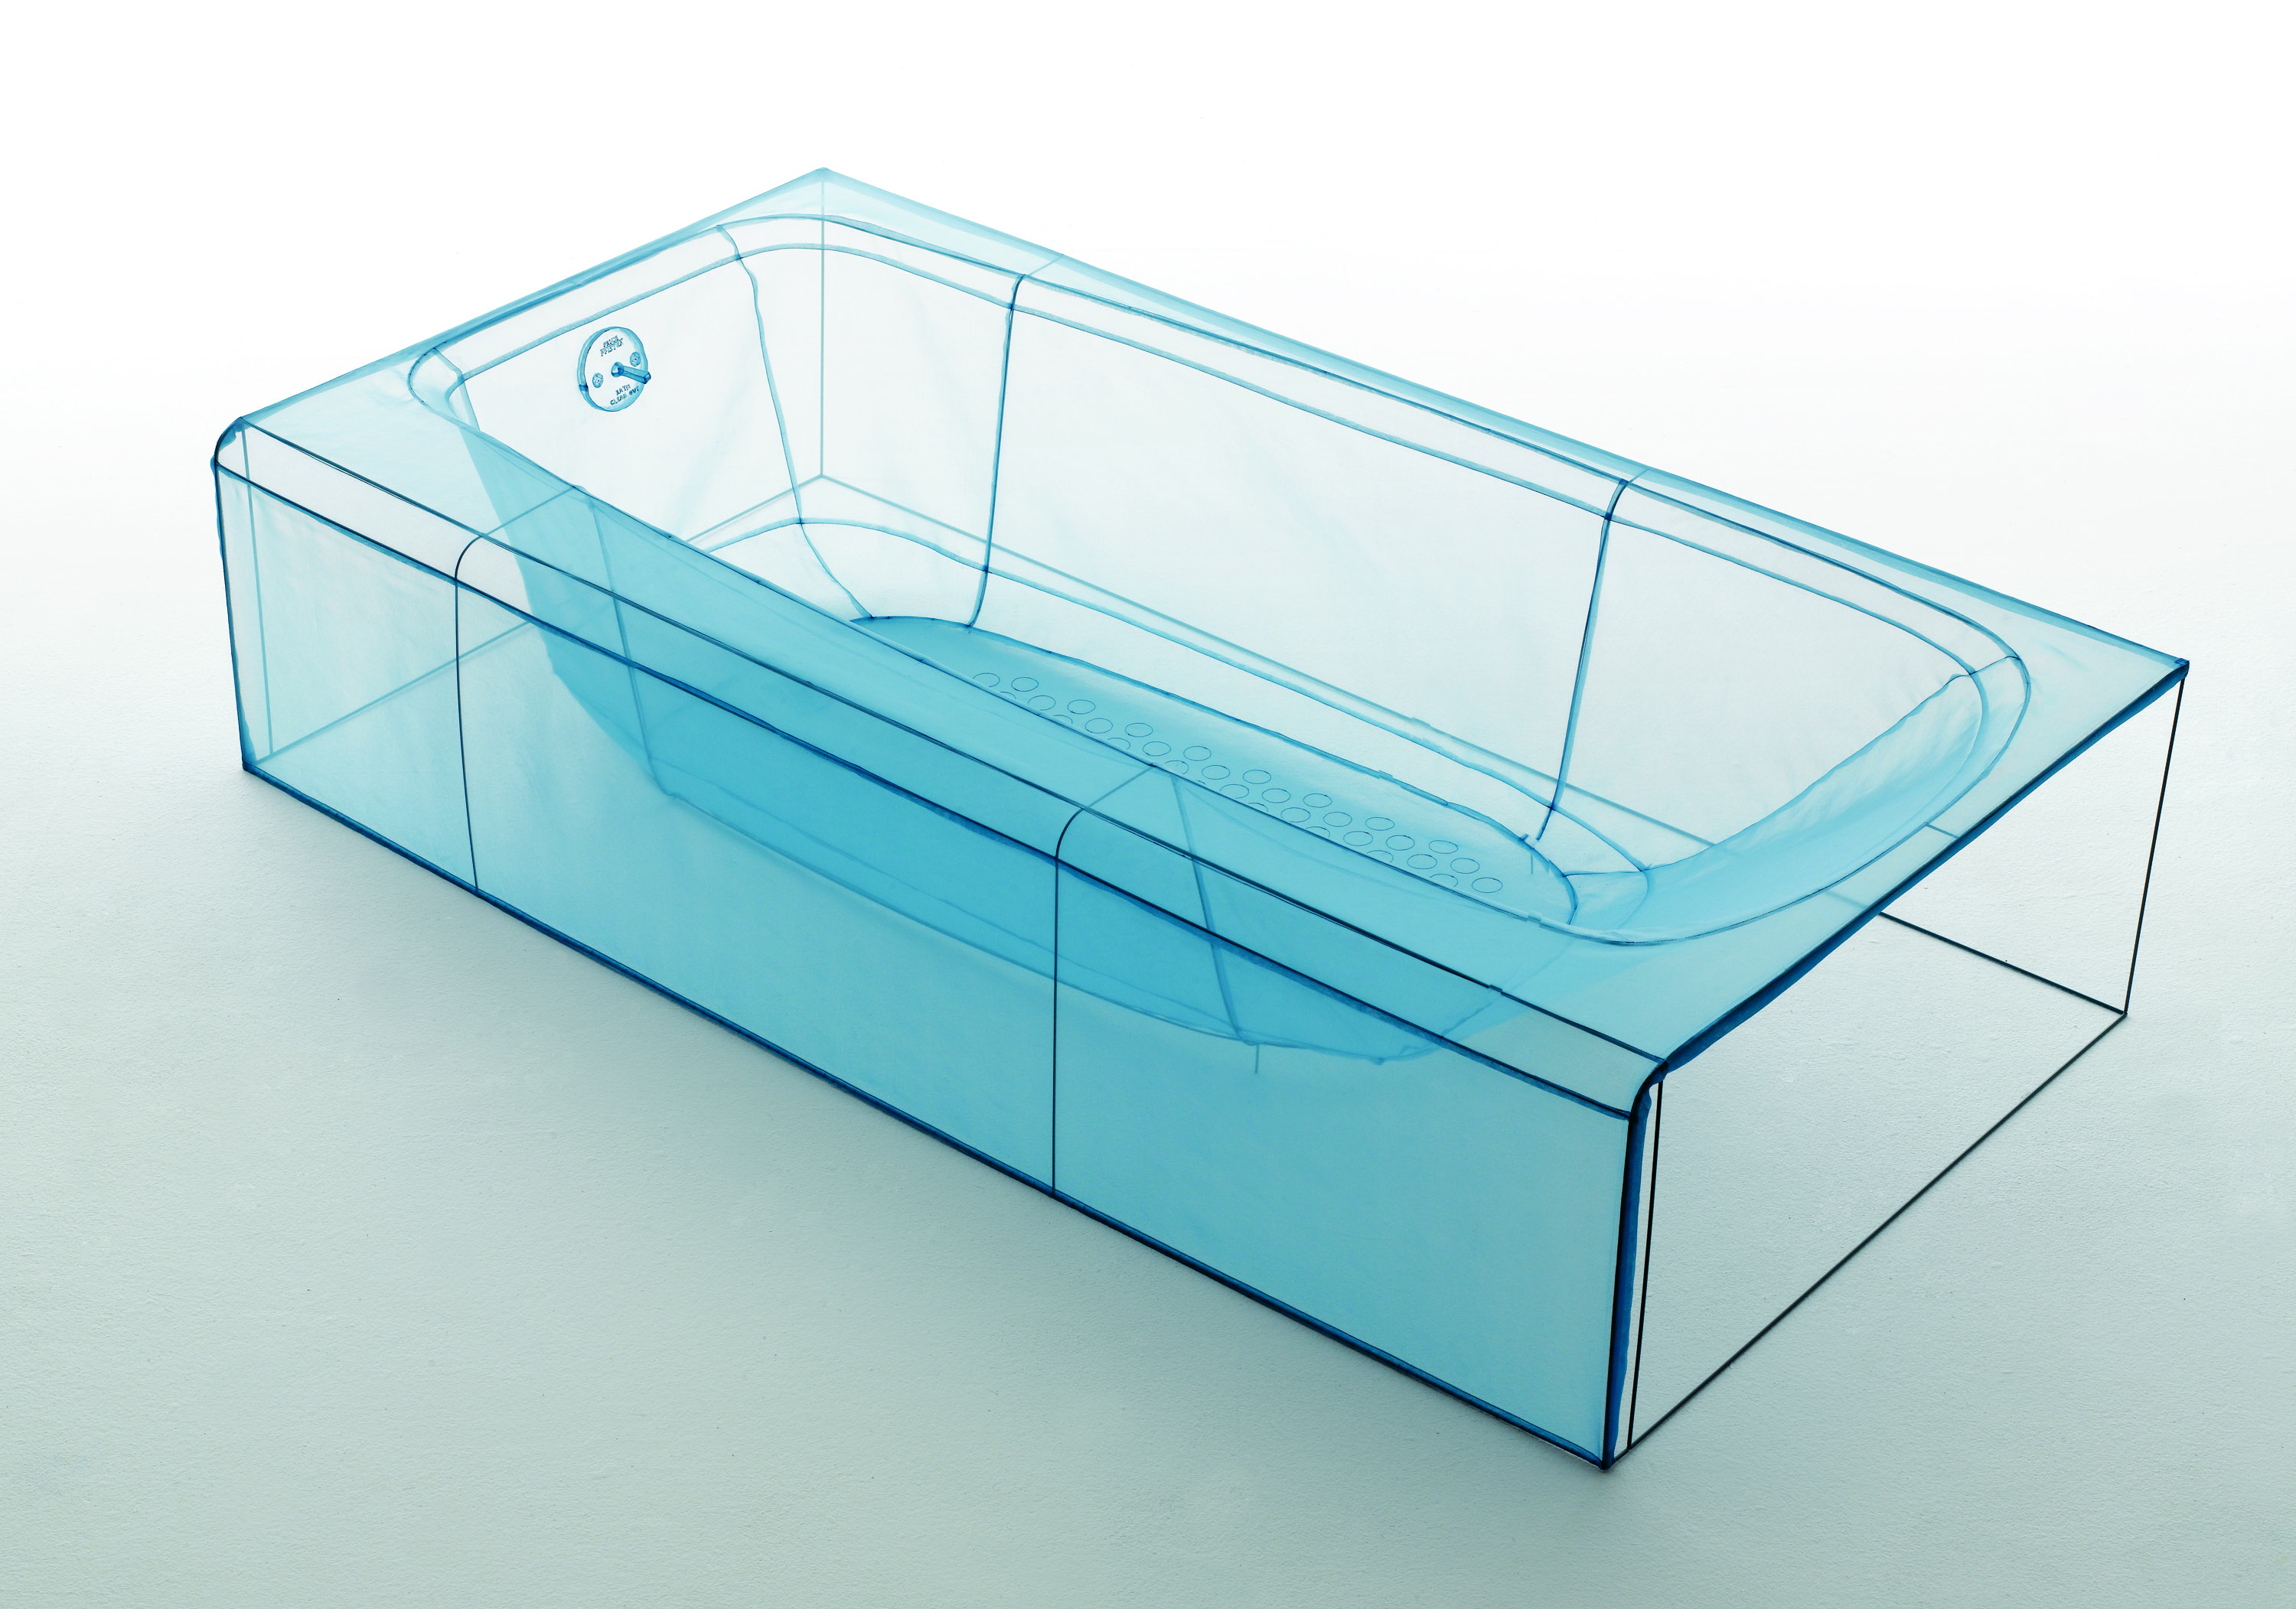 2013-10-15-Suh_LM18051_Specimen_Series__Bathtub_hr.jpg